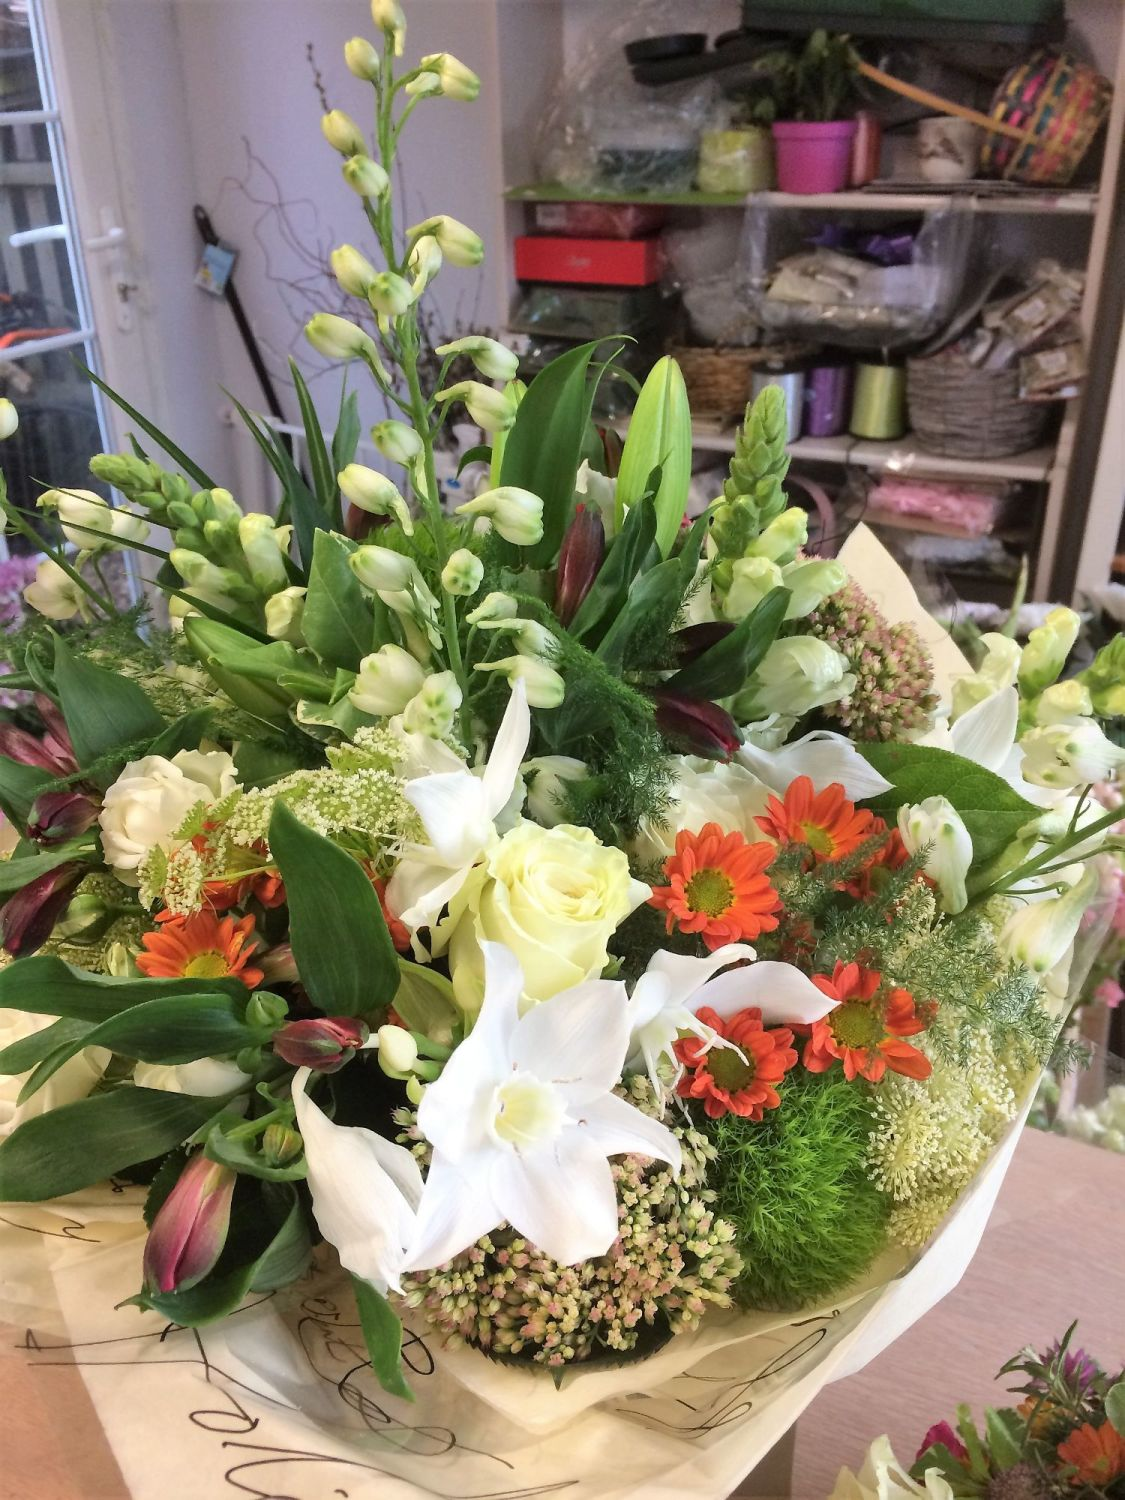 Aylesbury florist free same day delivery flower bouquets with no luxury mixed seasonal fresh flower bouquets perfect gift for birthday anniversary new izmirmasajfo Gallery